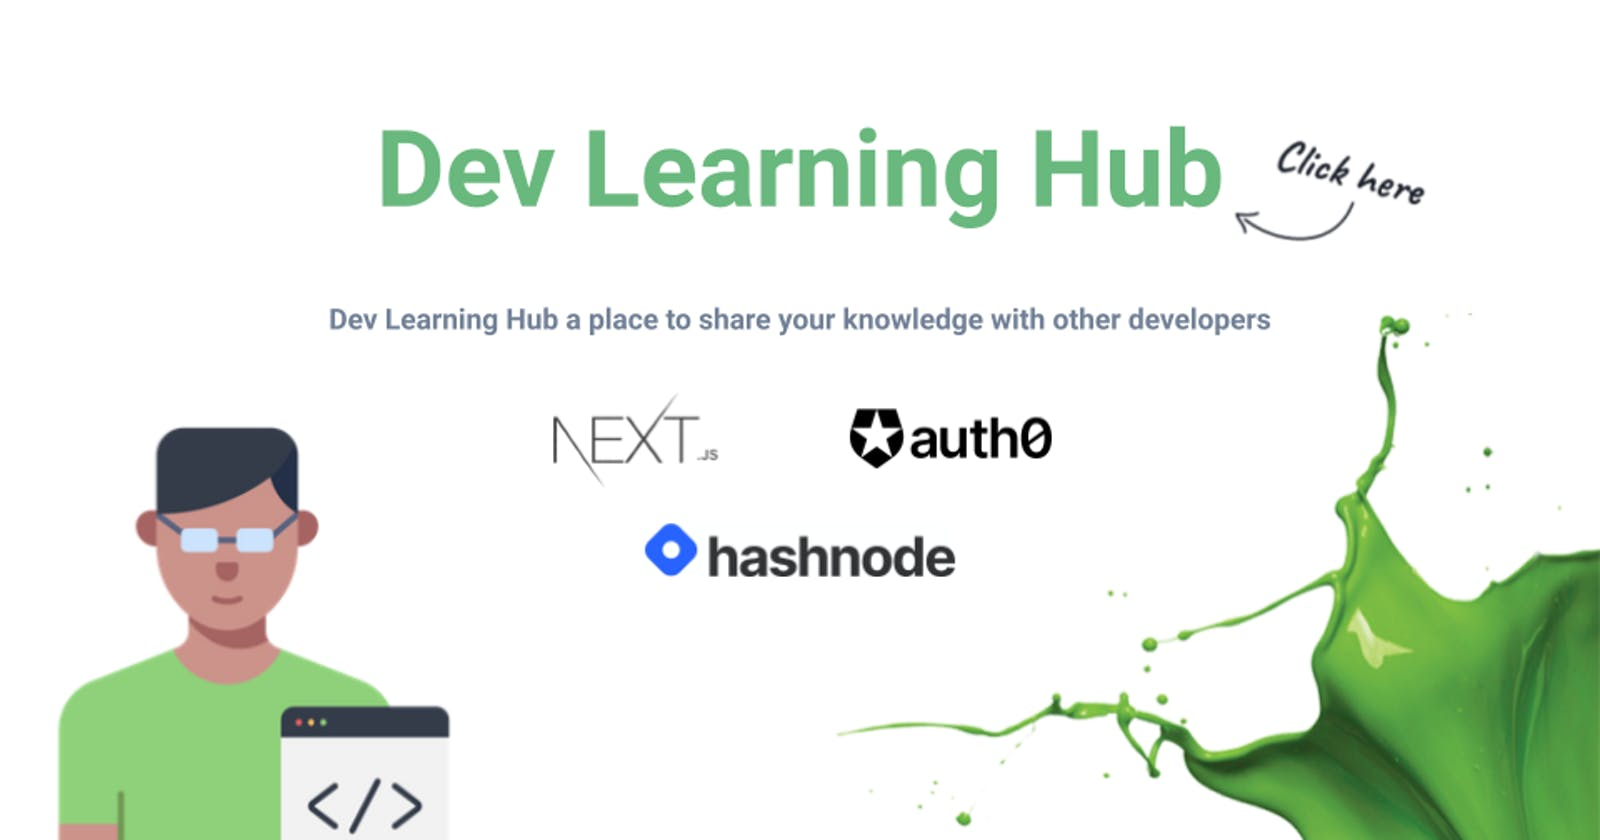 Dev Learning Hub - a place to share your knowledge with other developers